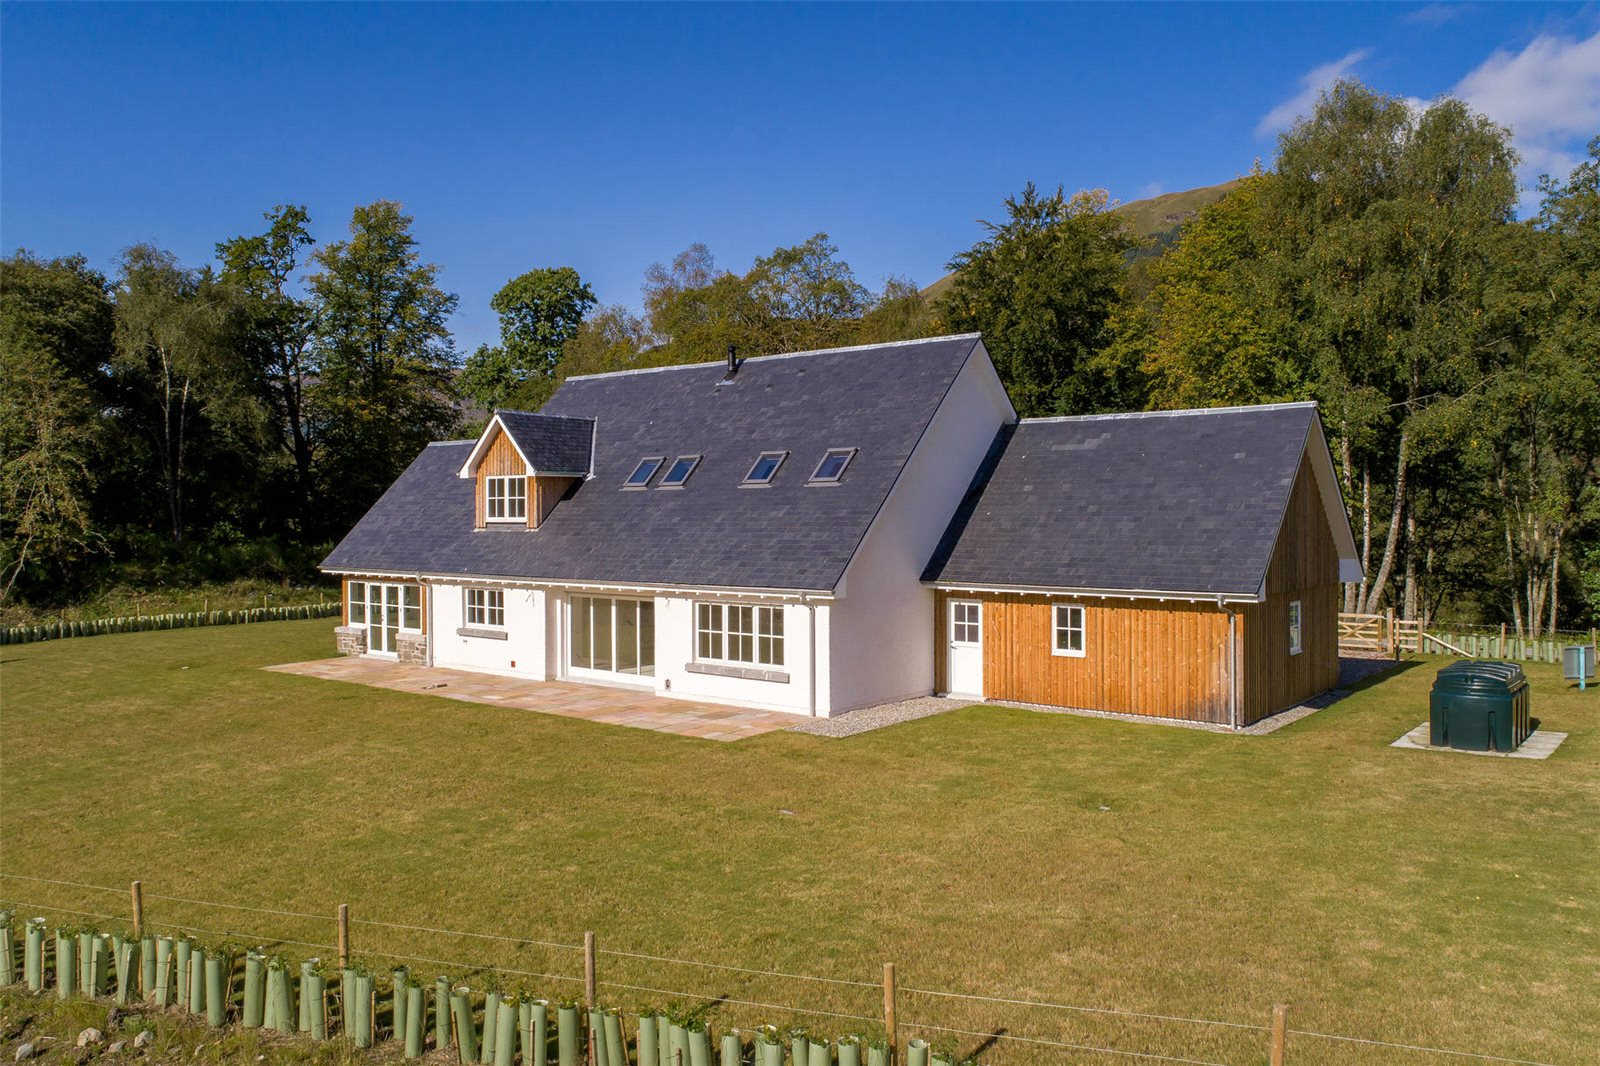 4 Bedrooms Detached House for sale in Stronvar Development Plot 6, Balquhidder, Lochearnhead, Stirlingshire, FK19